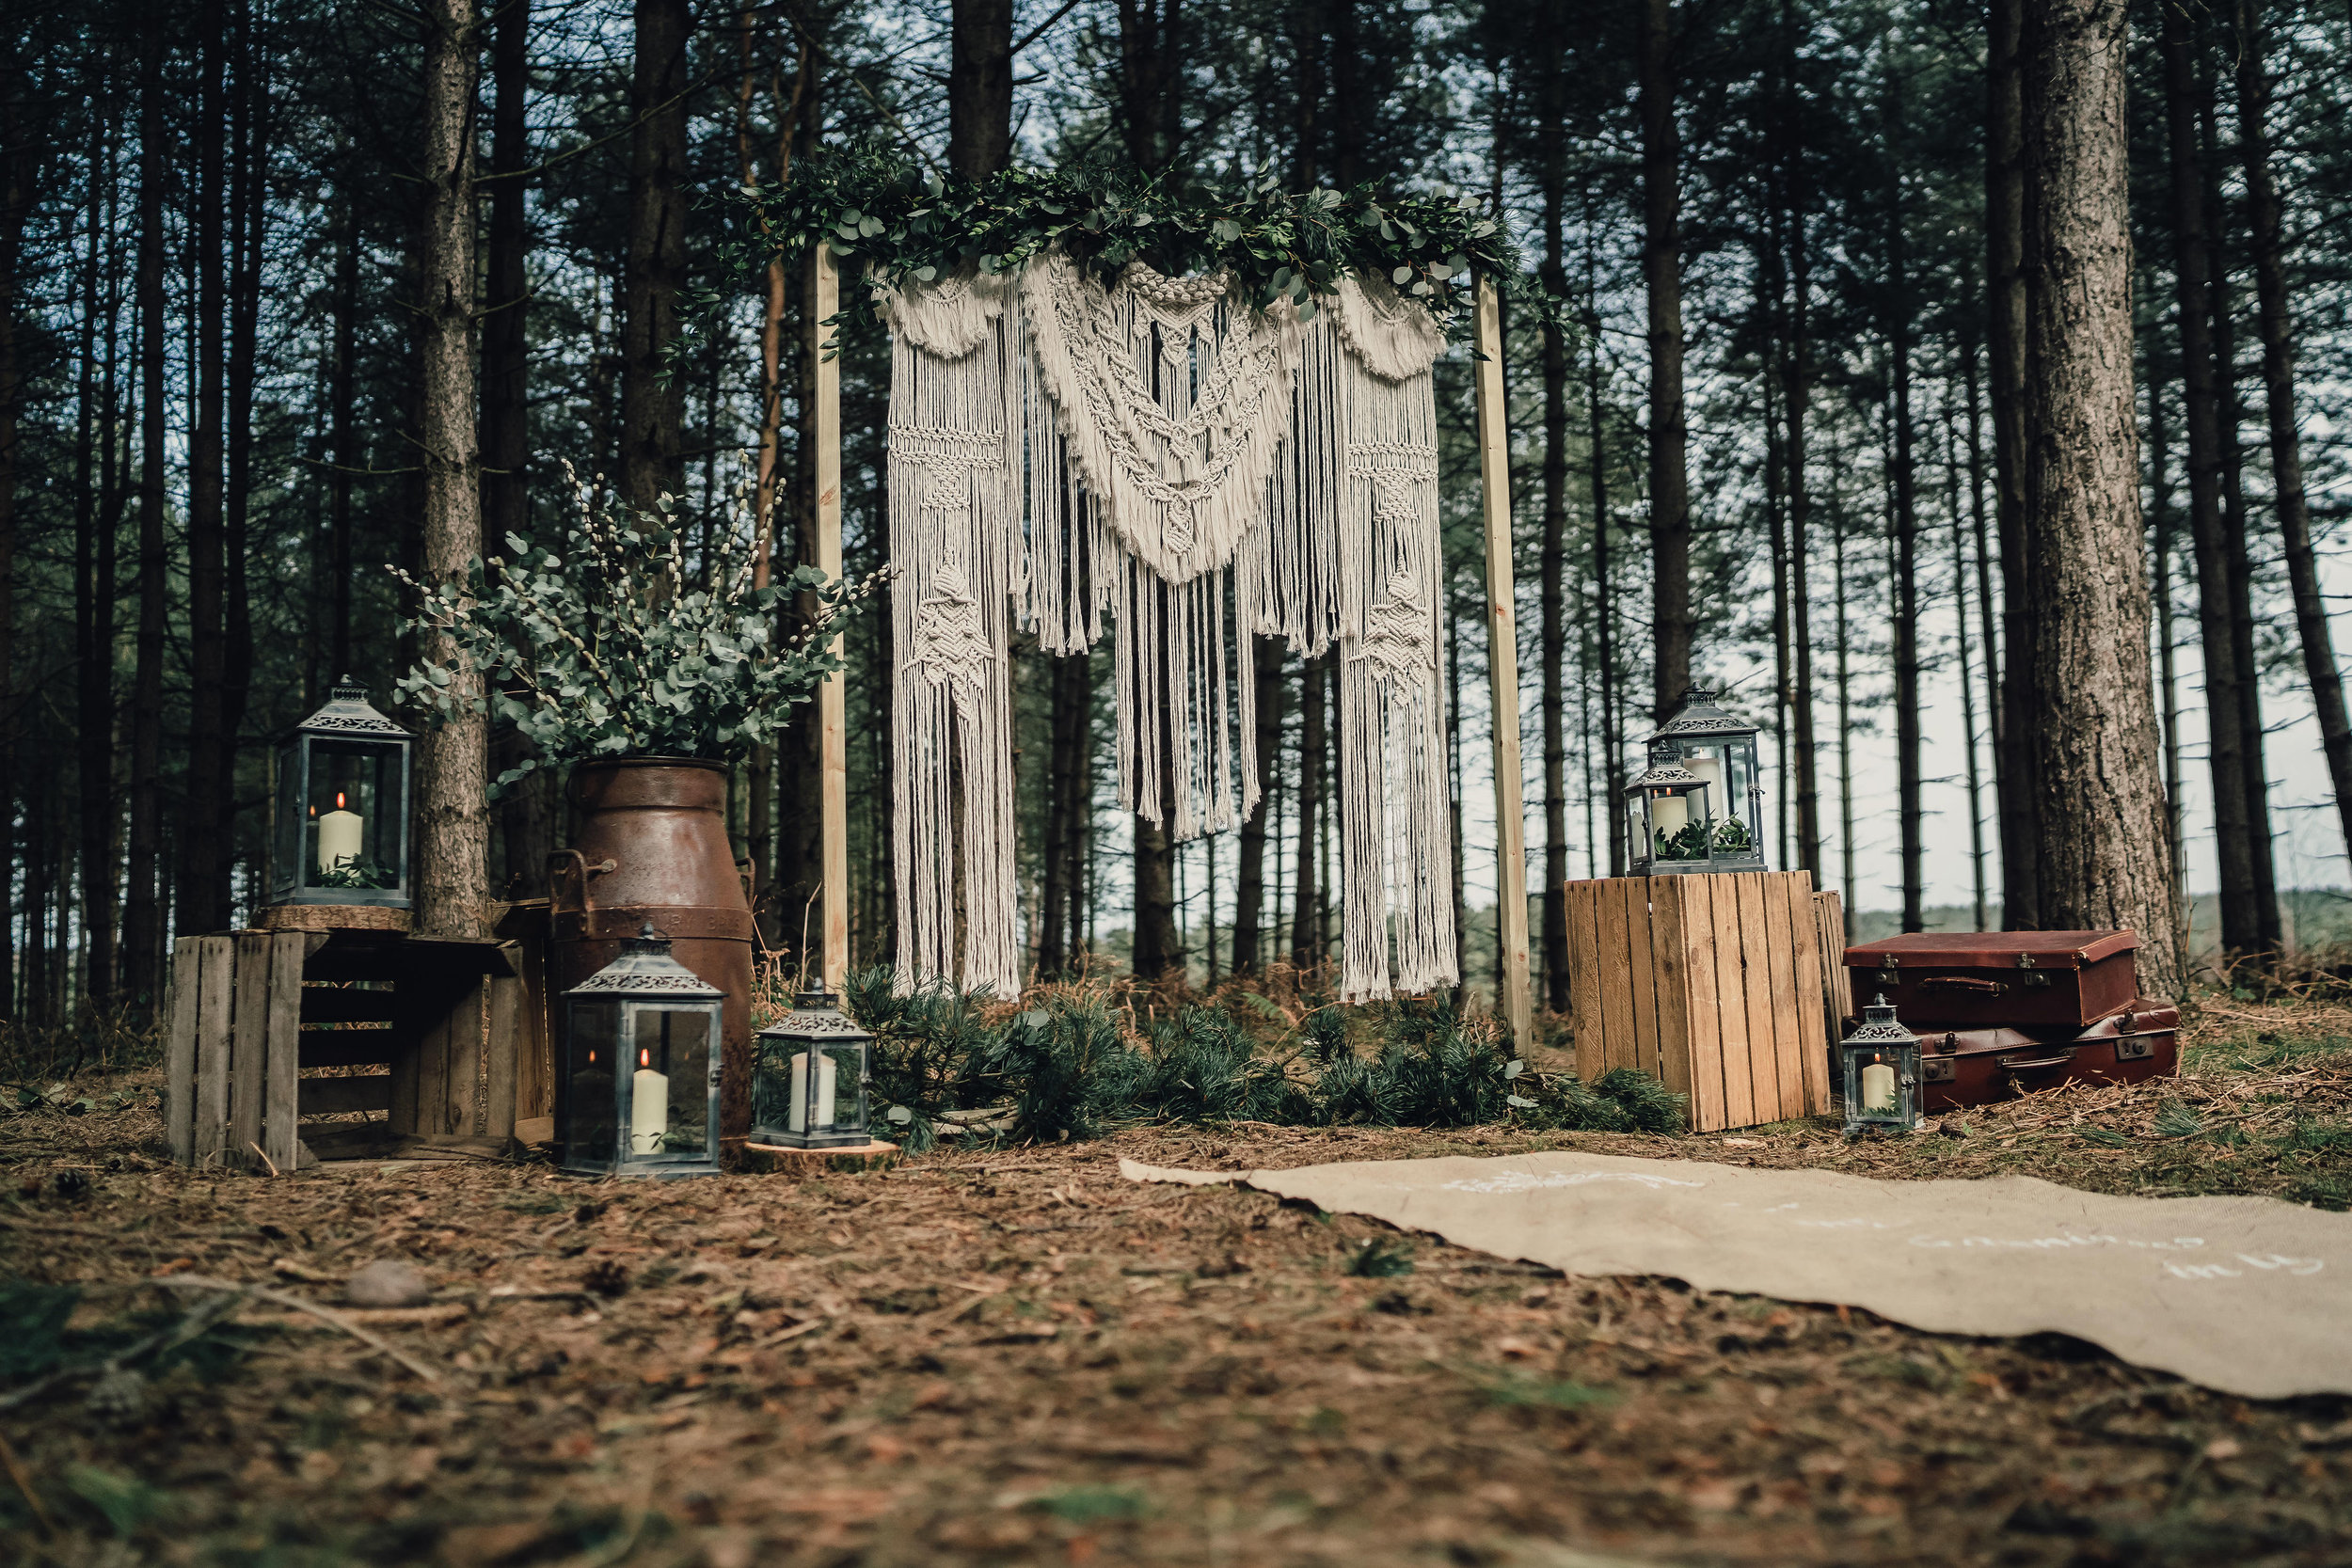 boho-elopement-cannock-chase-leeshawilliamsphotography-59.jpg